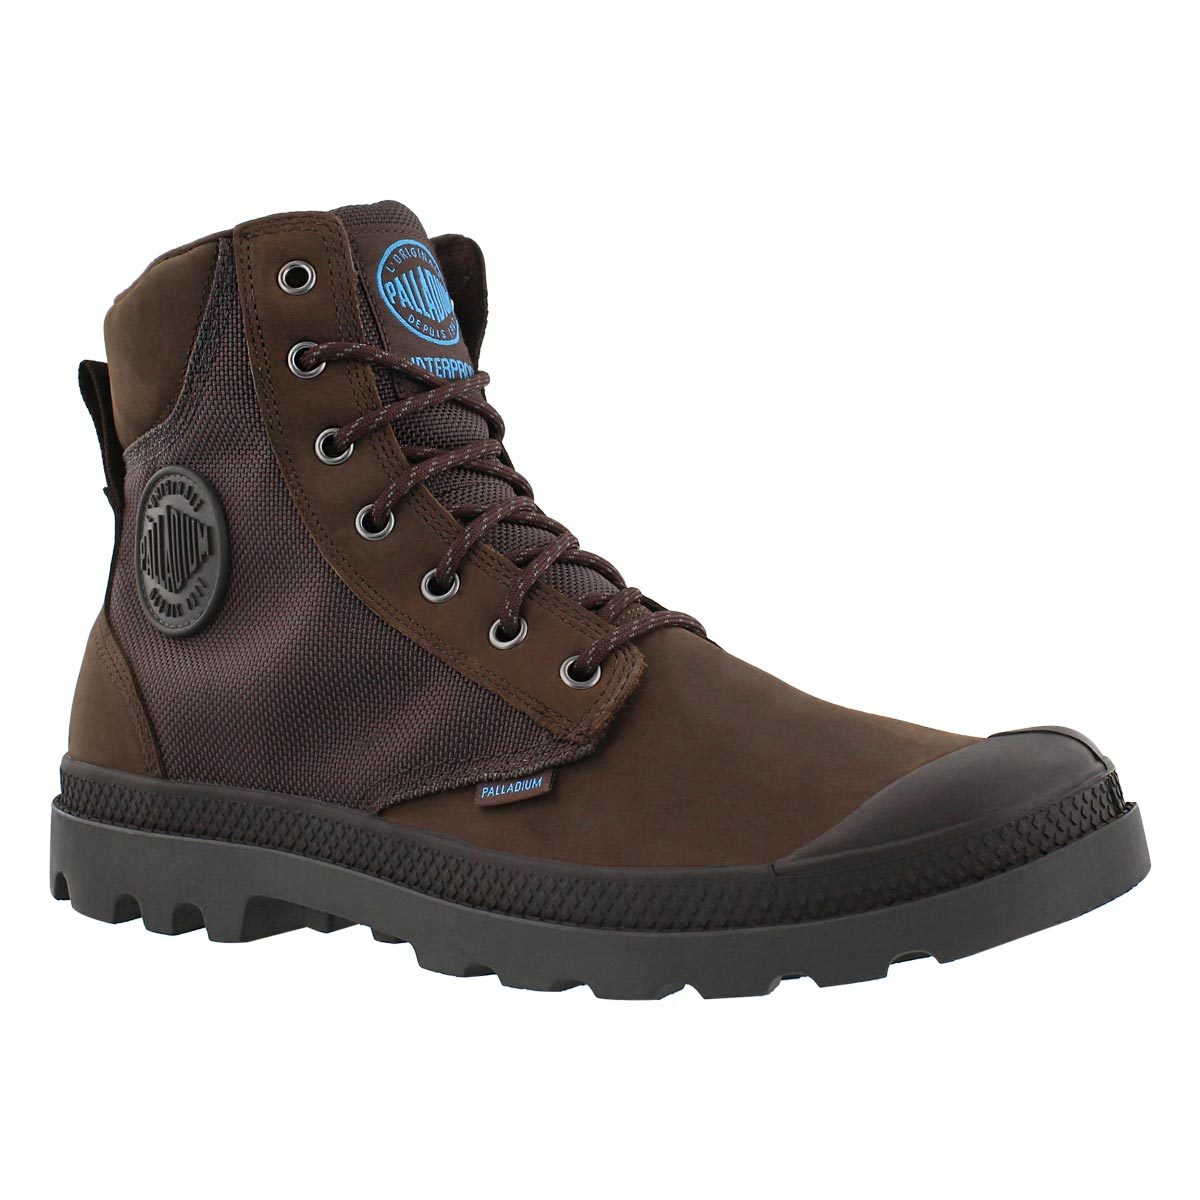 Men's PAMPA SPORT chocolate waterproof boots